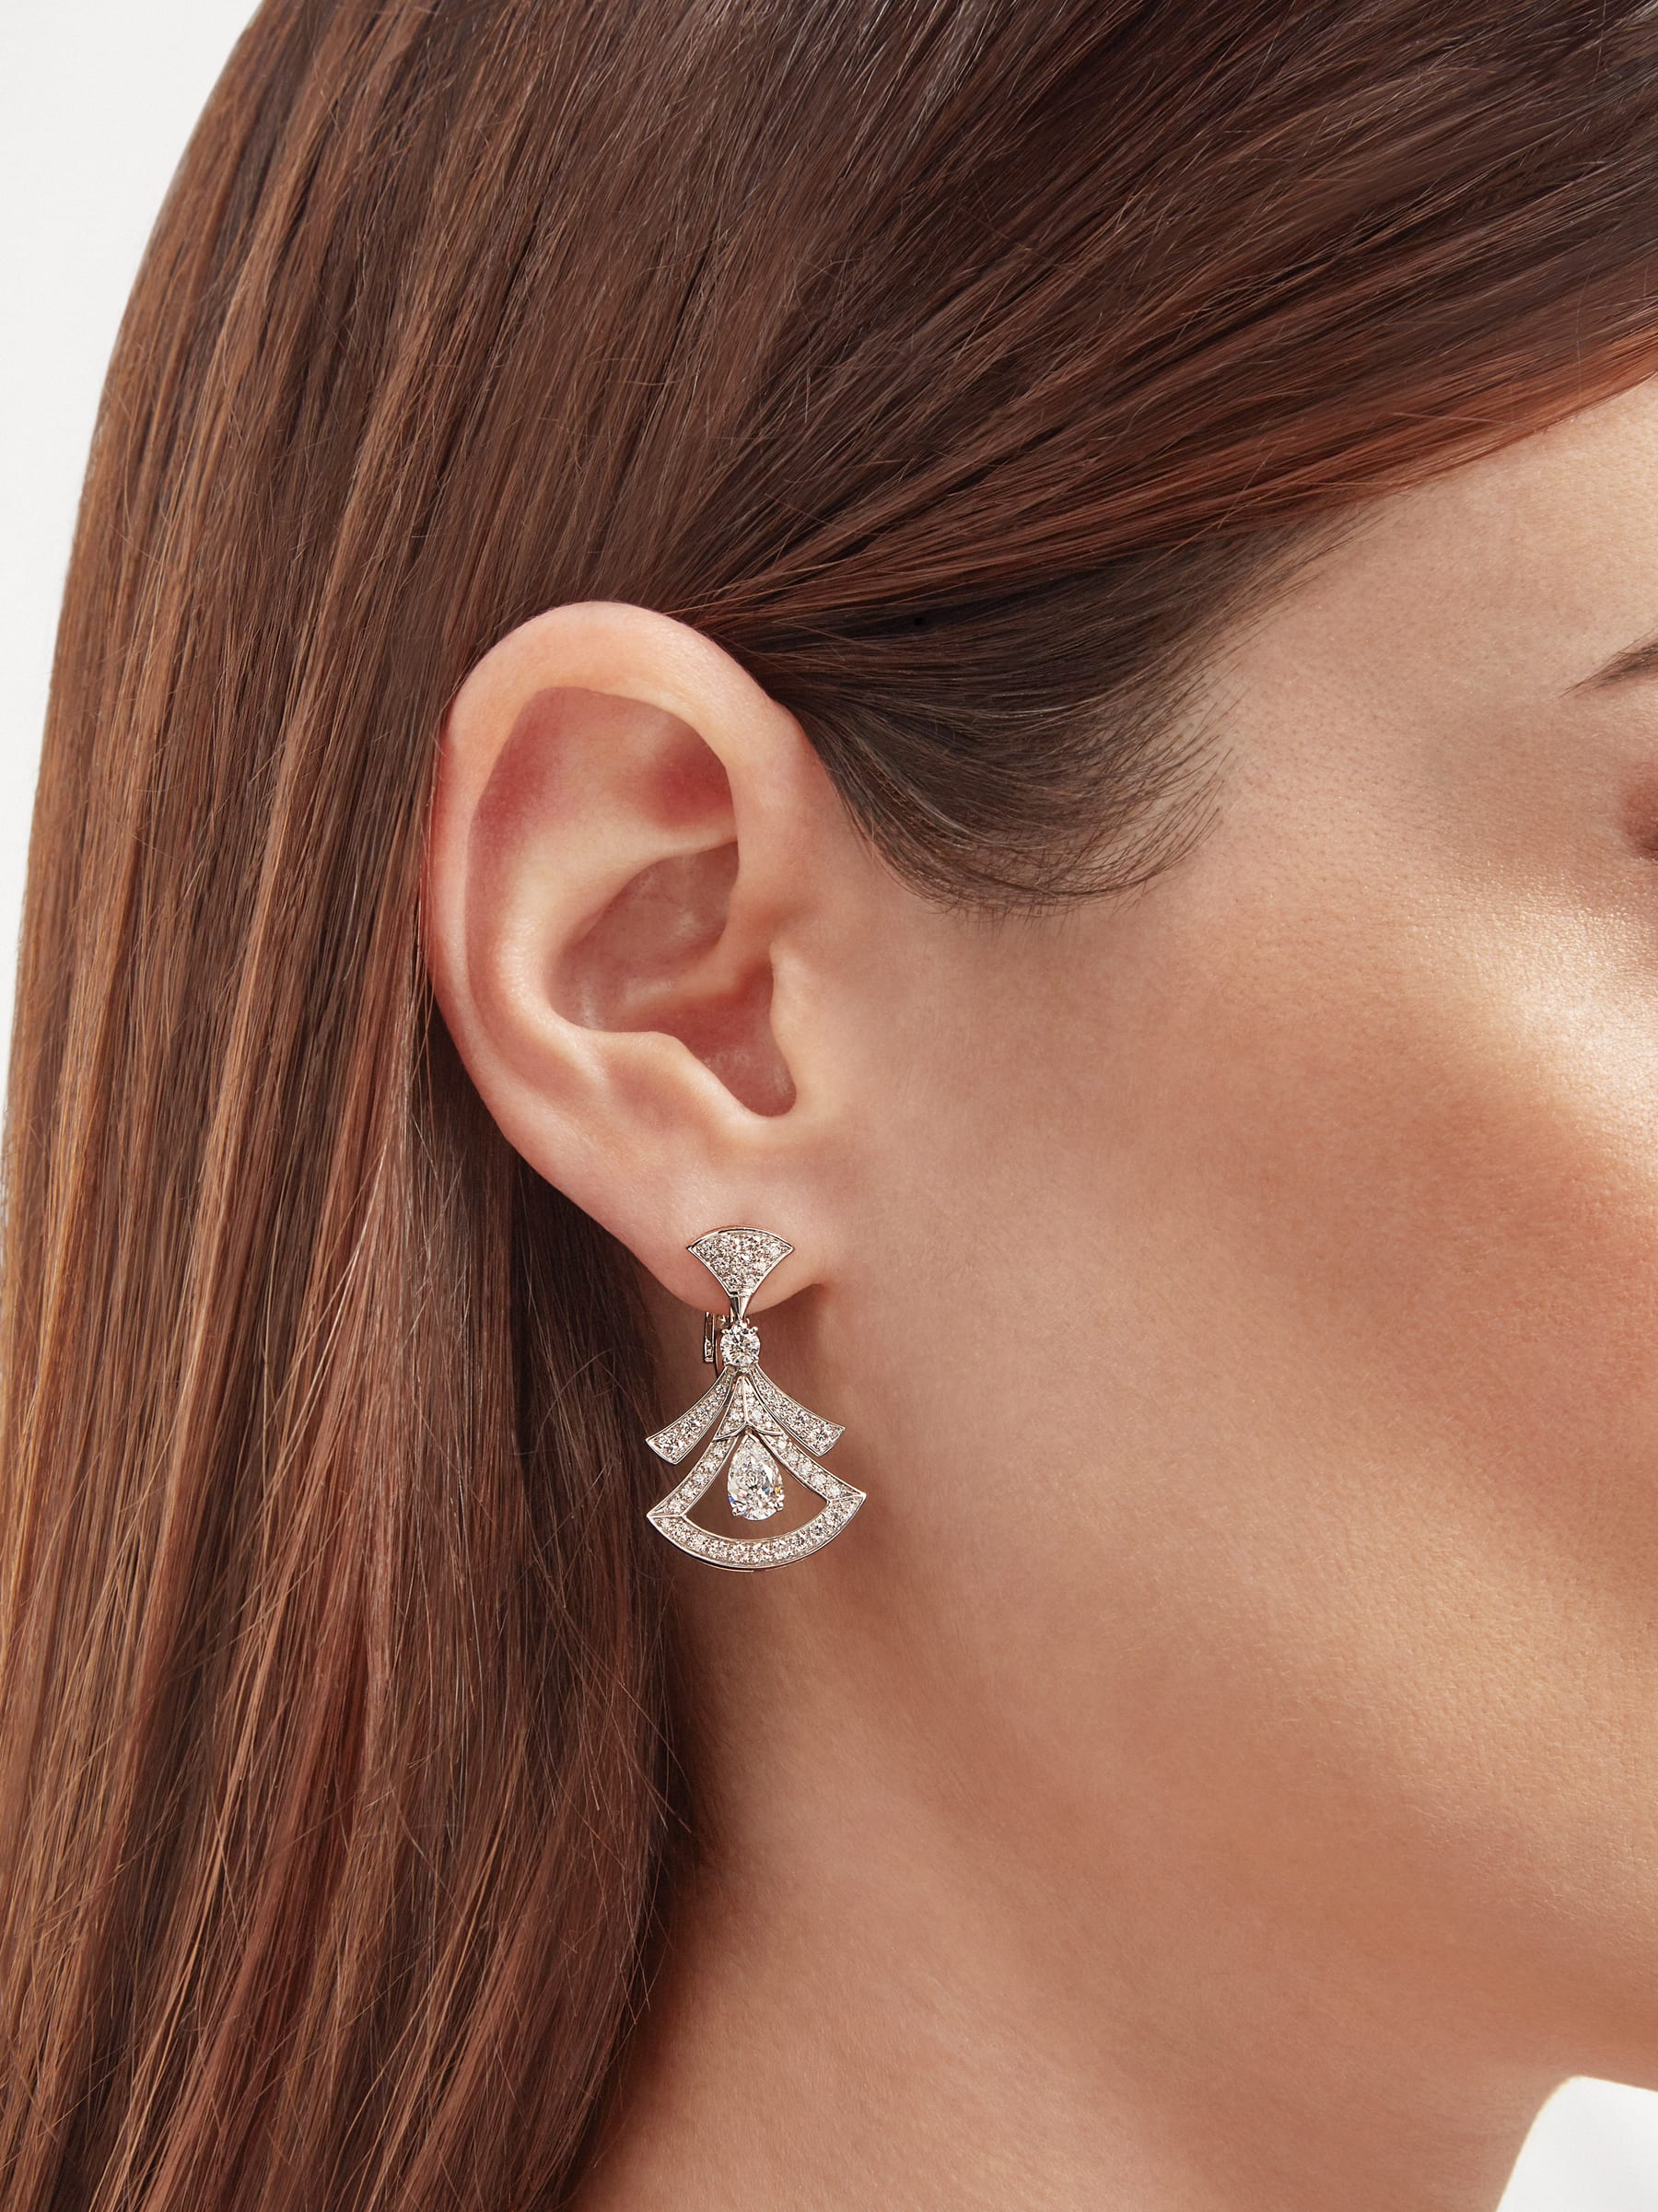 Divas' Dream 18 kt white gold openwork earrings set with two pear-shaped diamonds (1.40 ct), two round brilliant-cut diamonds (0.30 ct) and pavé diamonds (1.18 ct) 358221 image 4